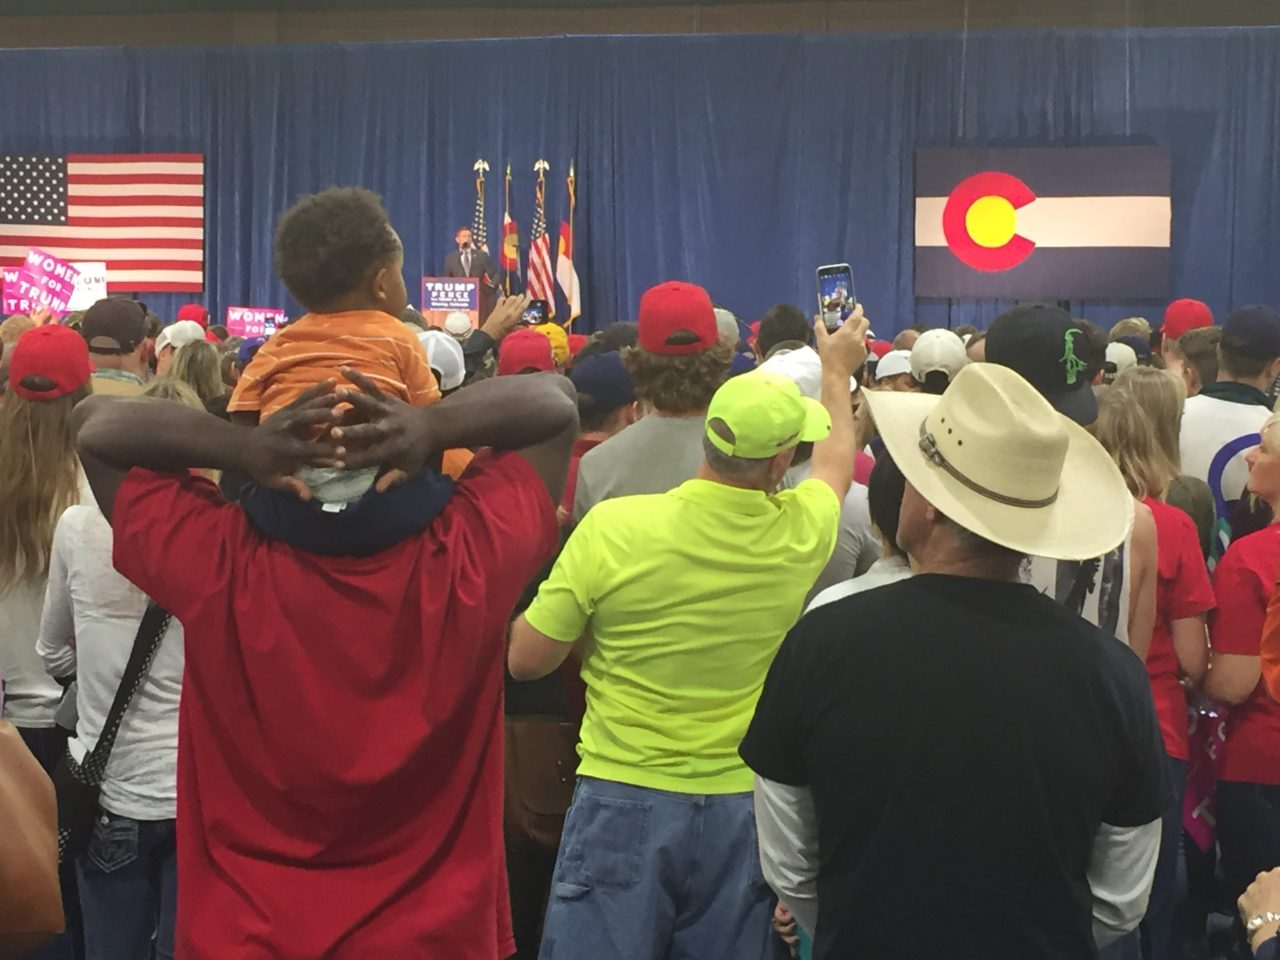 Donald Trump Colorado Rally in Greeley (Joel Pollak / Breitbart News)